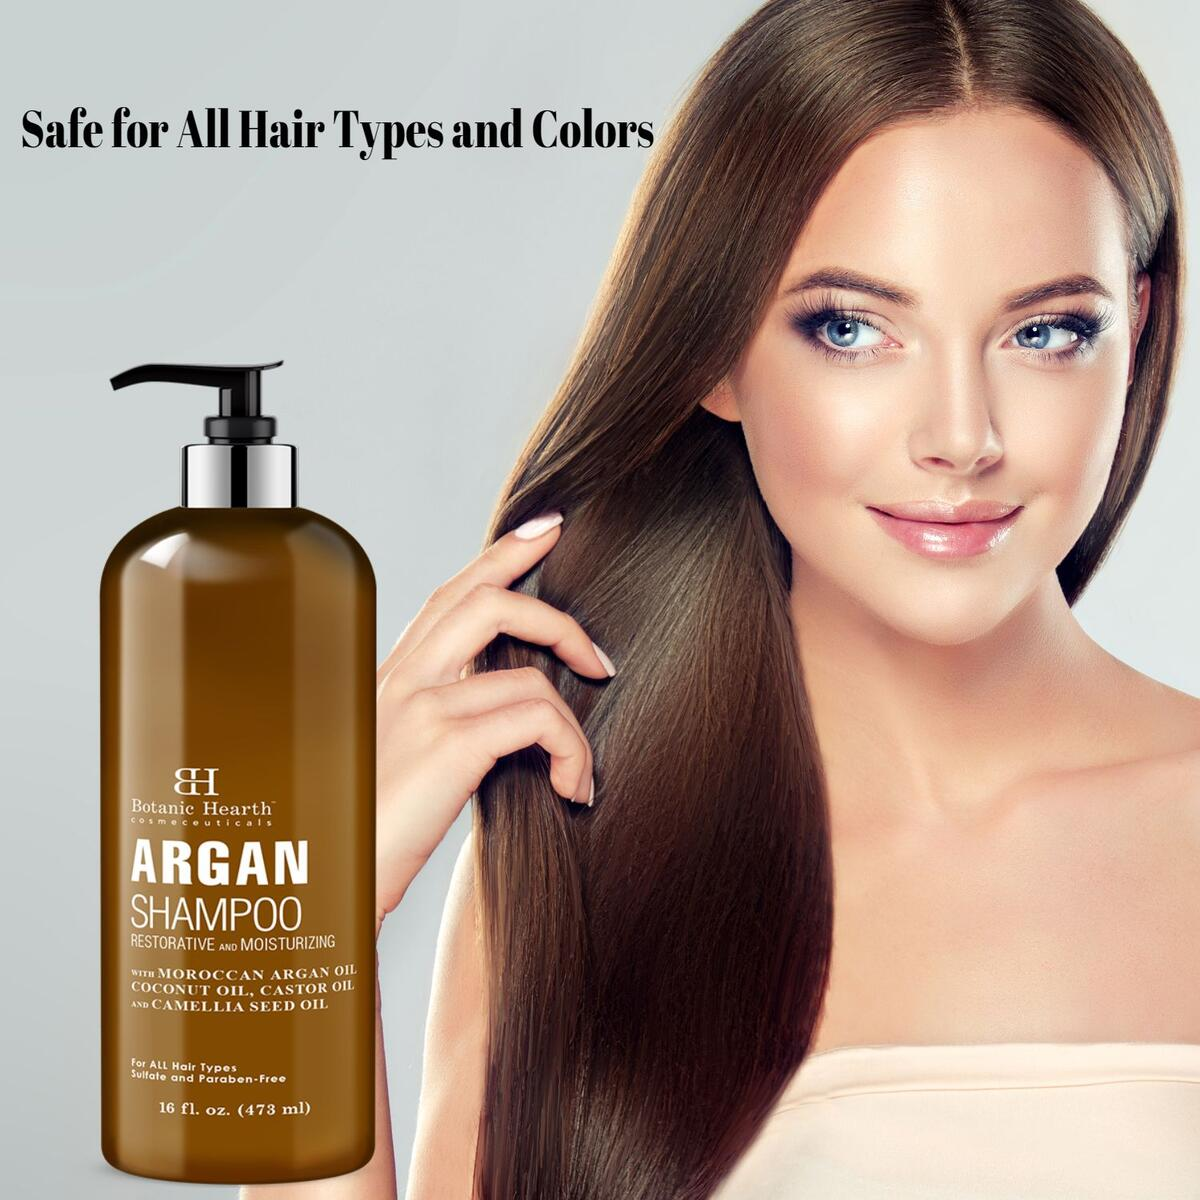 Argan Oil Shampoo, Hydrating & Volumizing, Sulfate & Paraben Free, All Hair Types & Color Treated Hair, Men and Women 16 fl oz